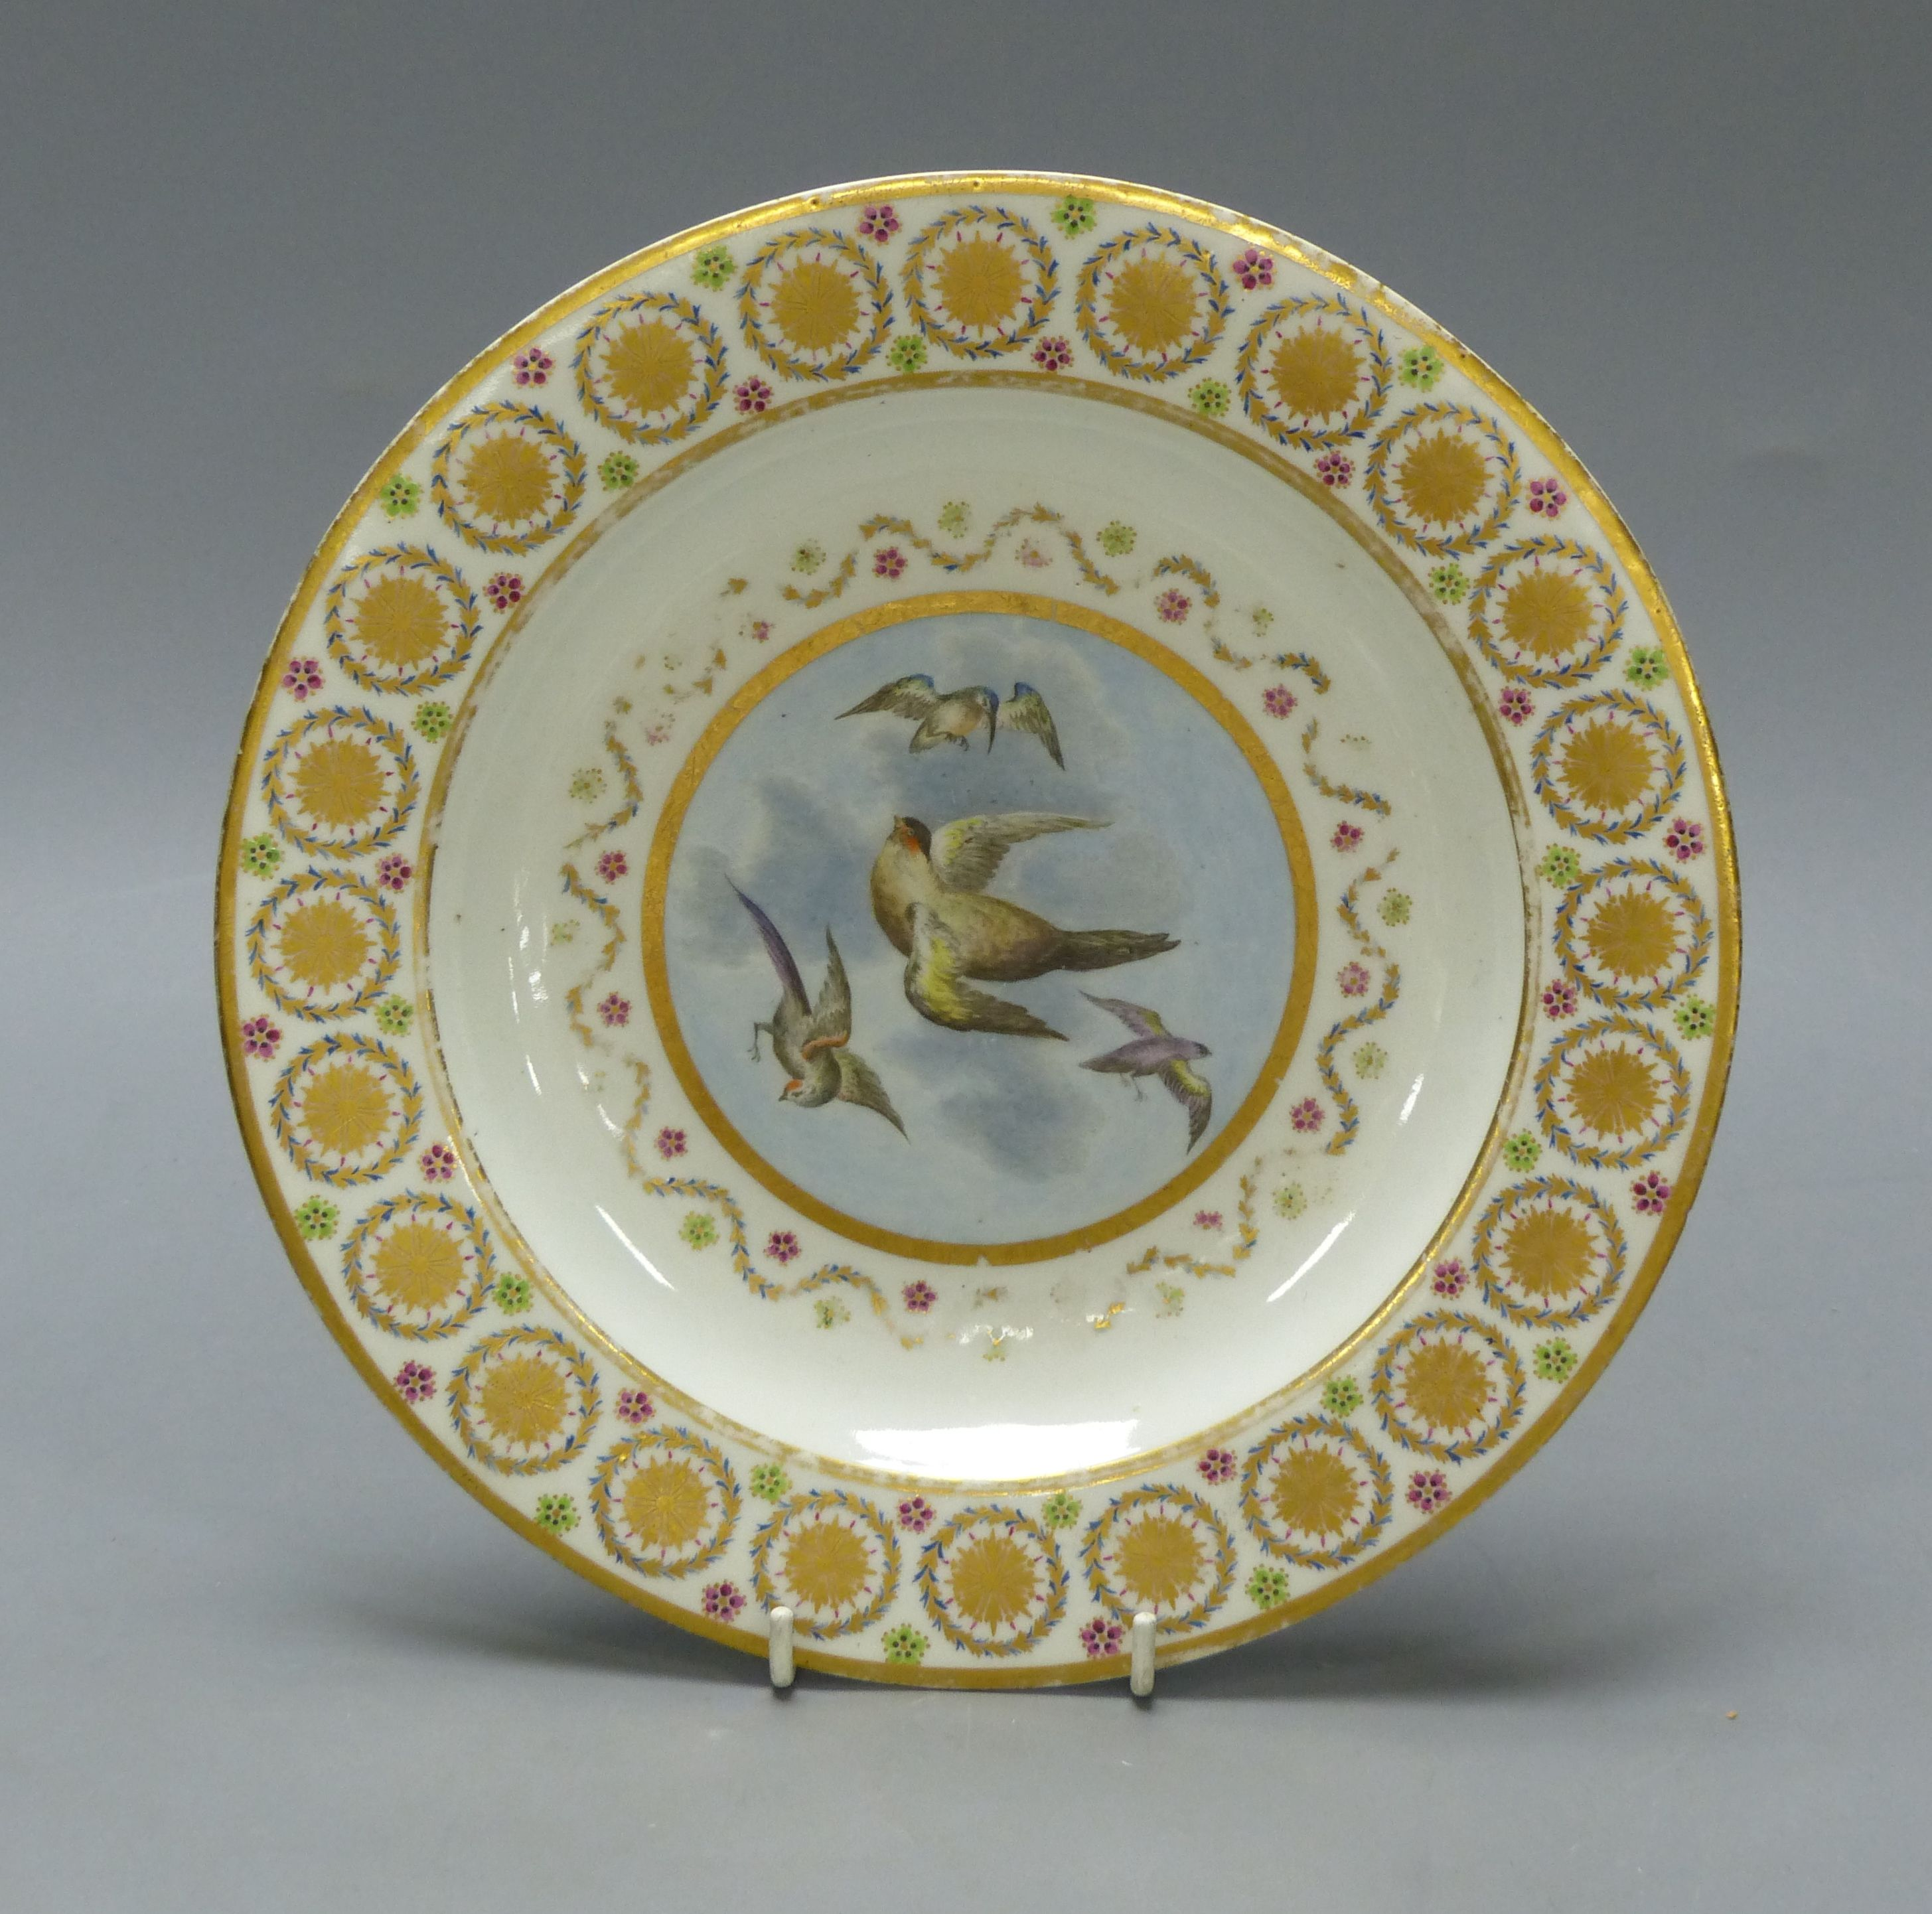 A Crown Derby plate painted with birds, c.1810, diameter 24.5cm